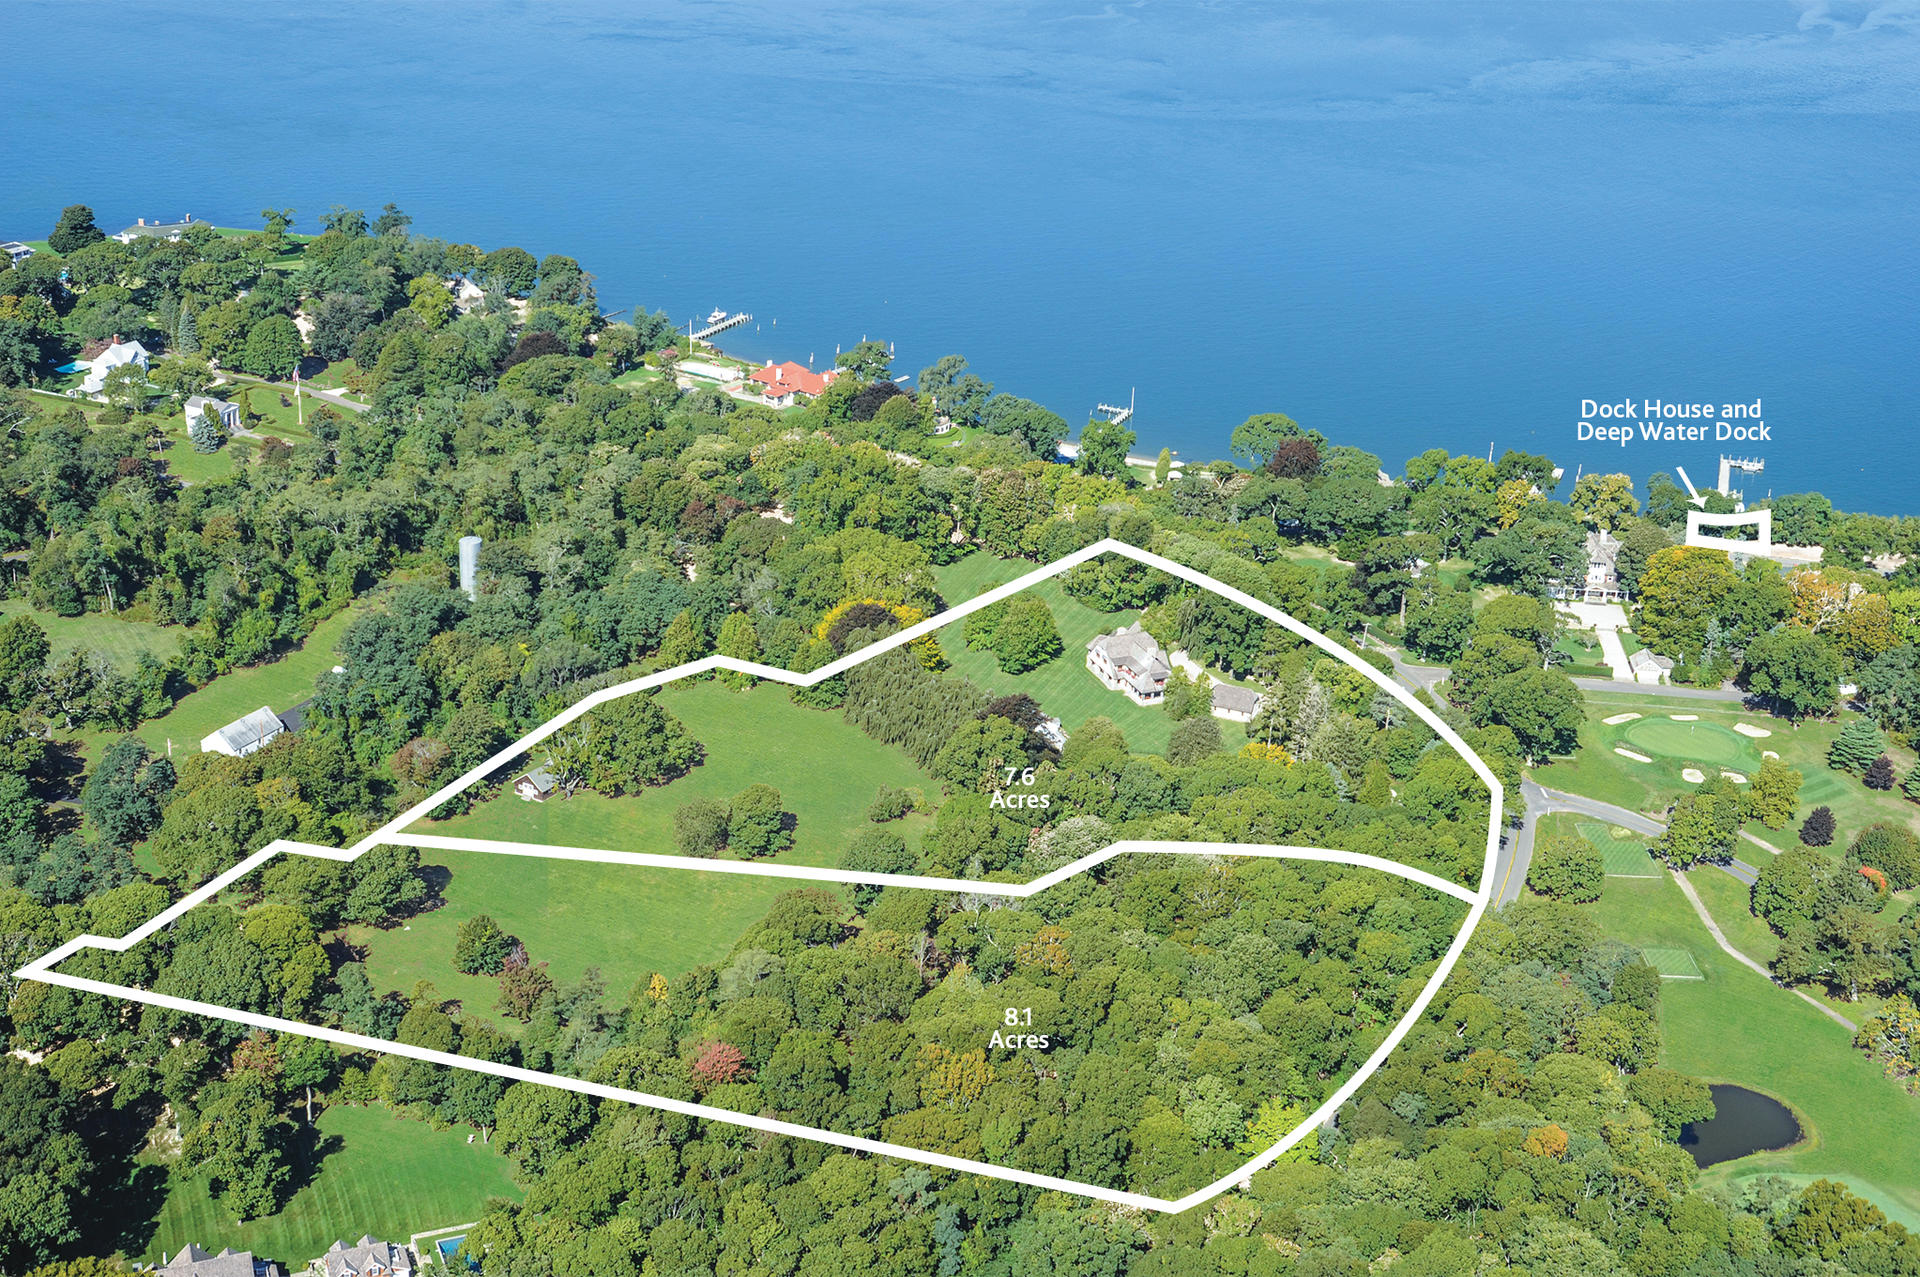 Single Family Home for Sale at Historic Shelter Island Estate Nearly 20% Of The Village 31 Manhanset Road, Shelter Island, New York